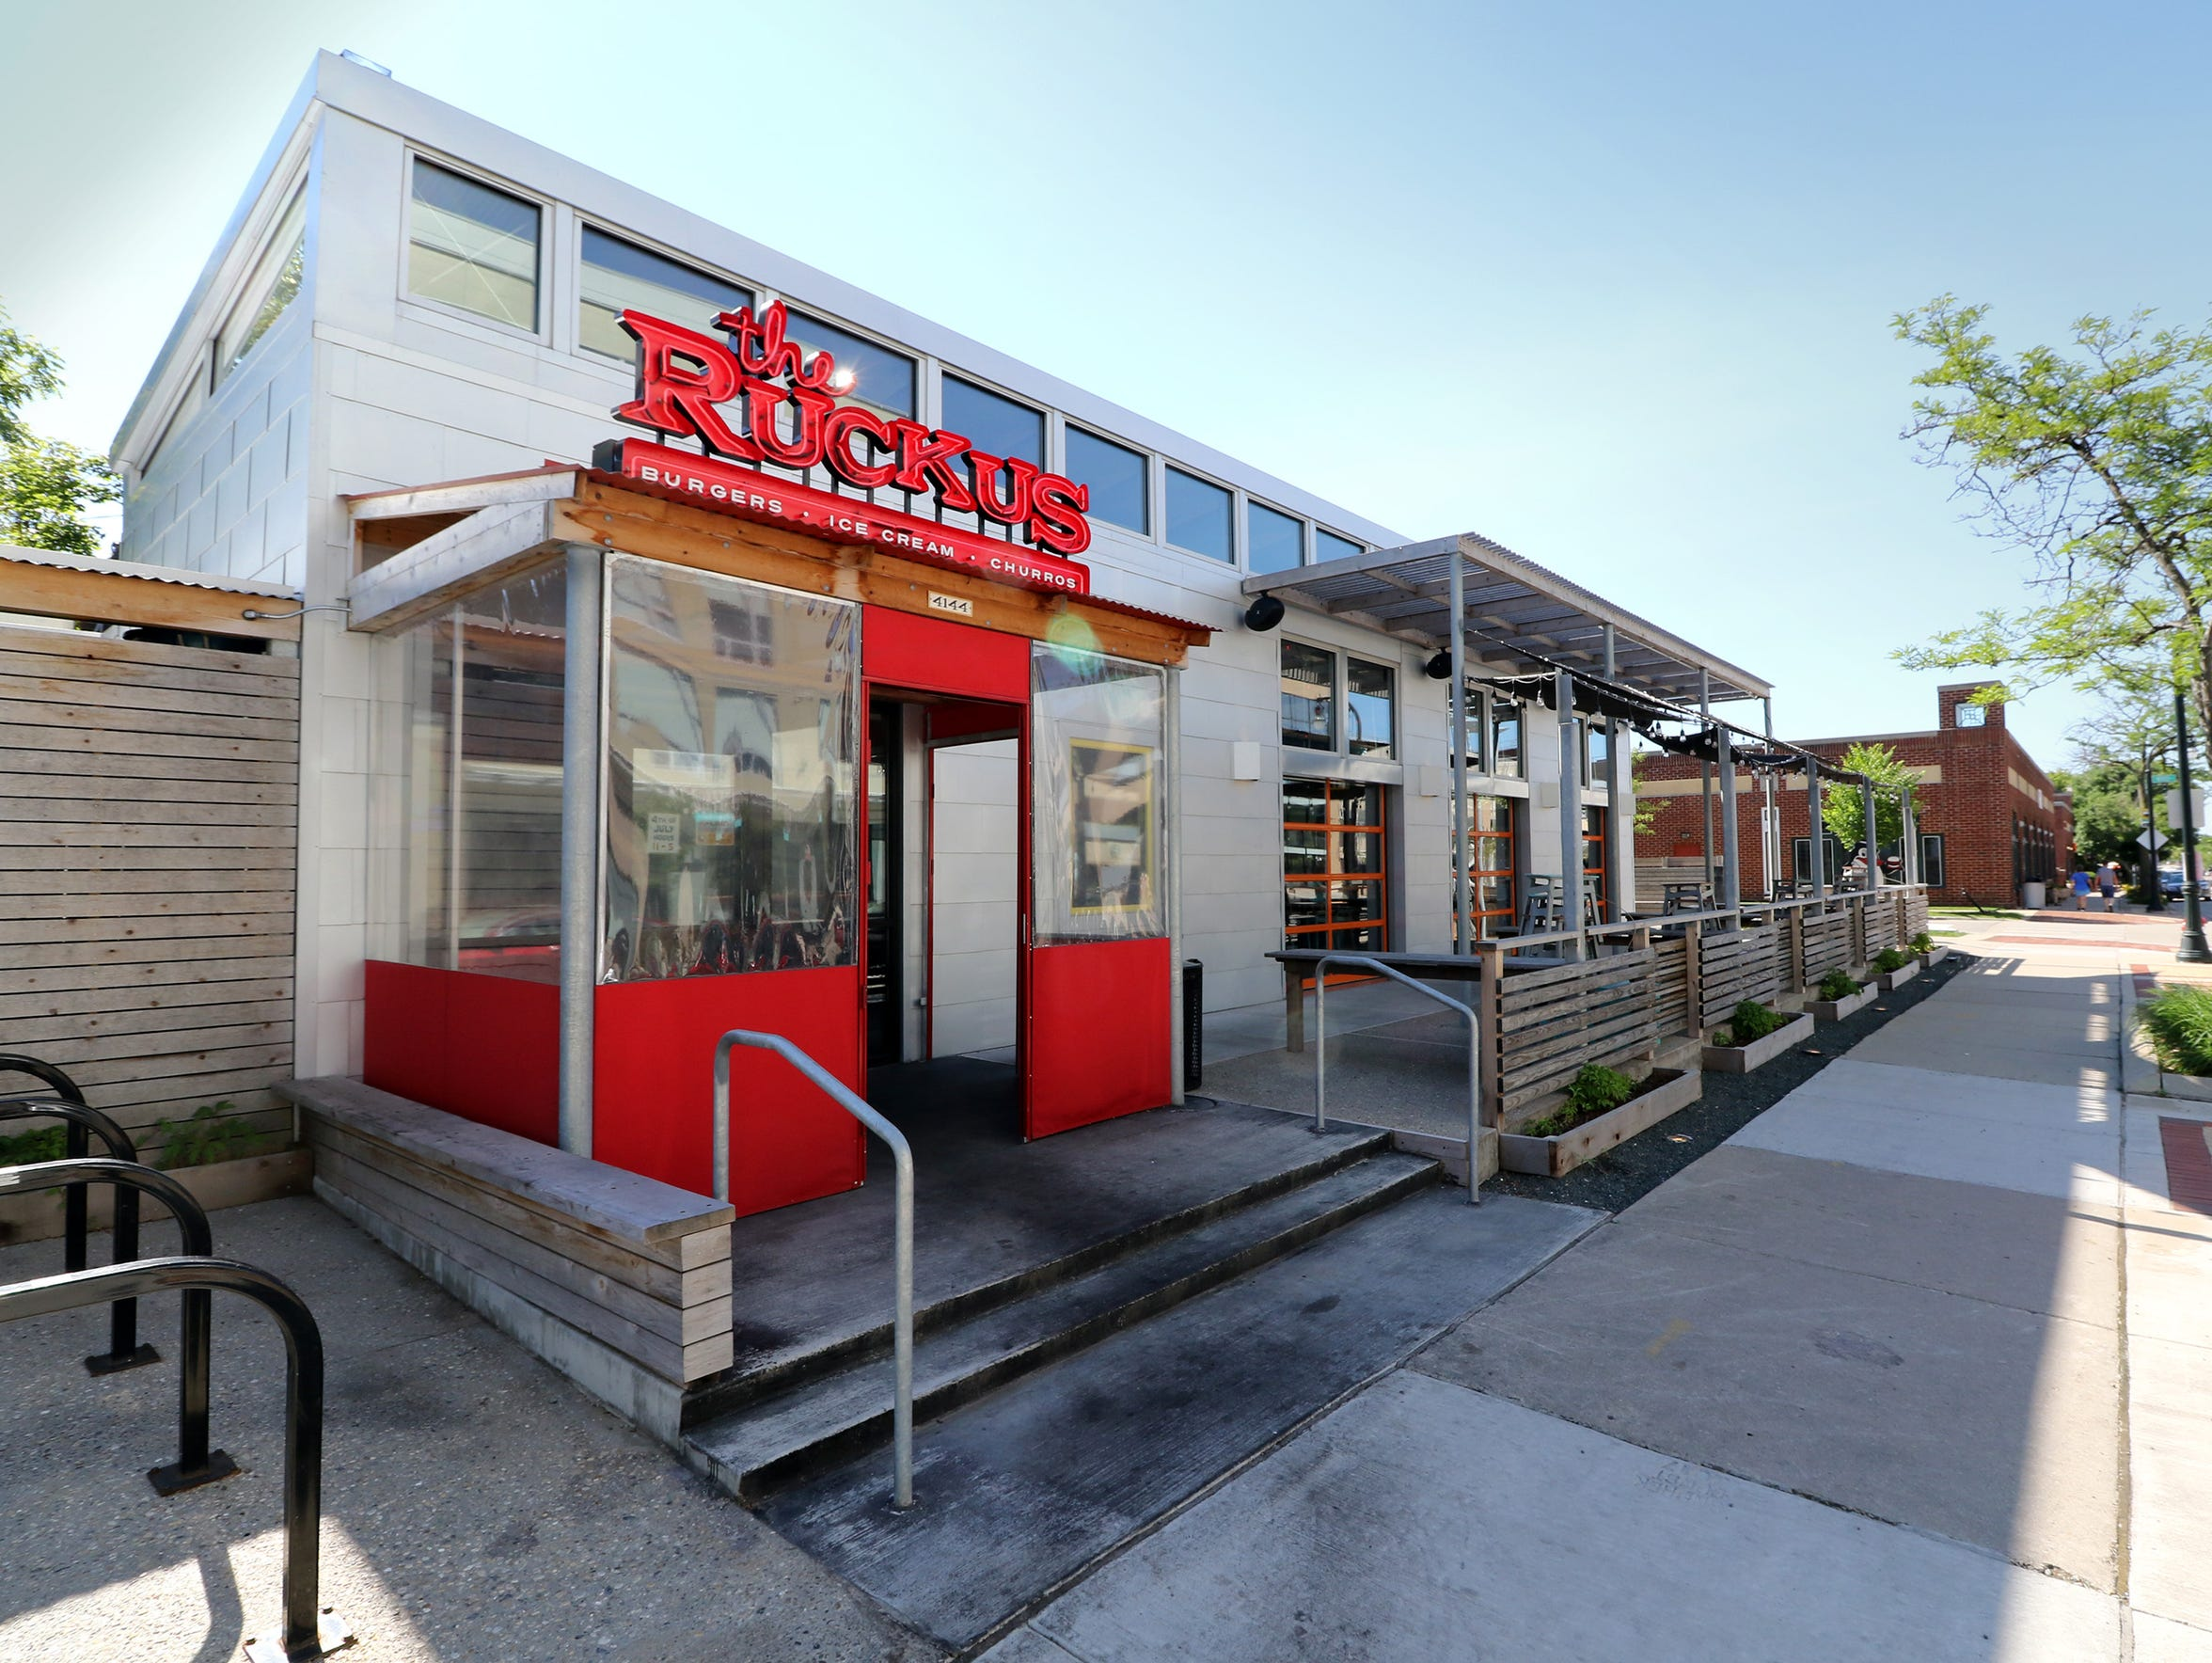 The Ruckus, 4144 N. Oakland Ave., is an example of a business that was given a facade grant by the village of Shorewood. The grants are meant to improve the look of storefronts in the village's commercial district.